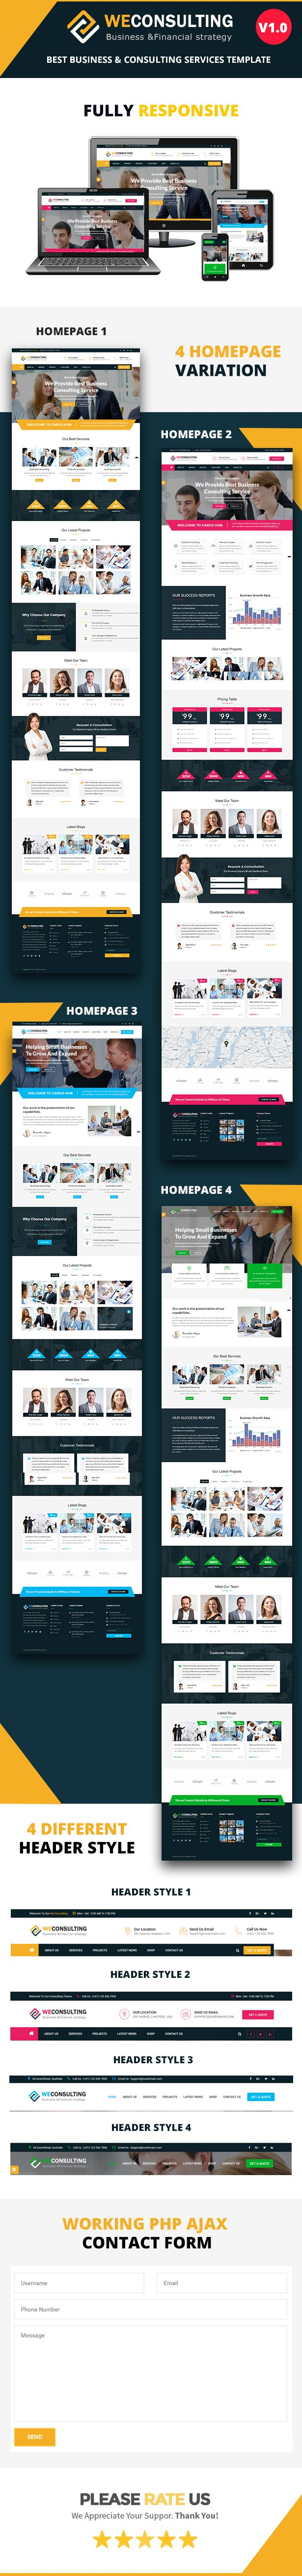 WECONSULTING - Financial Business & Consulting HTML Template by graphicrajkumar